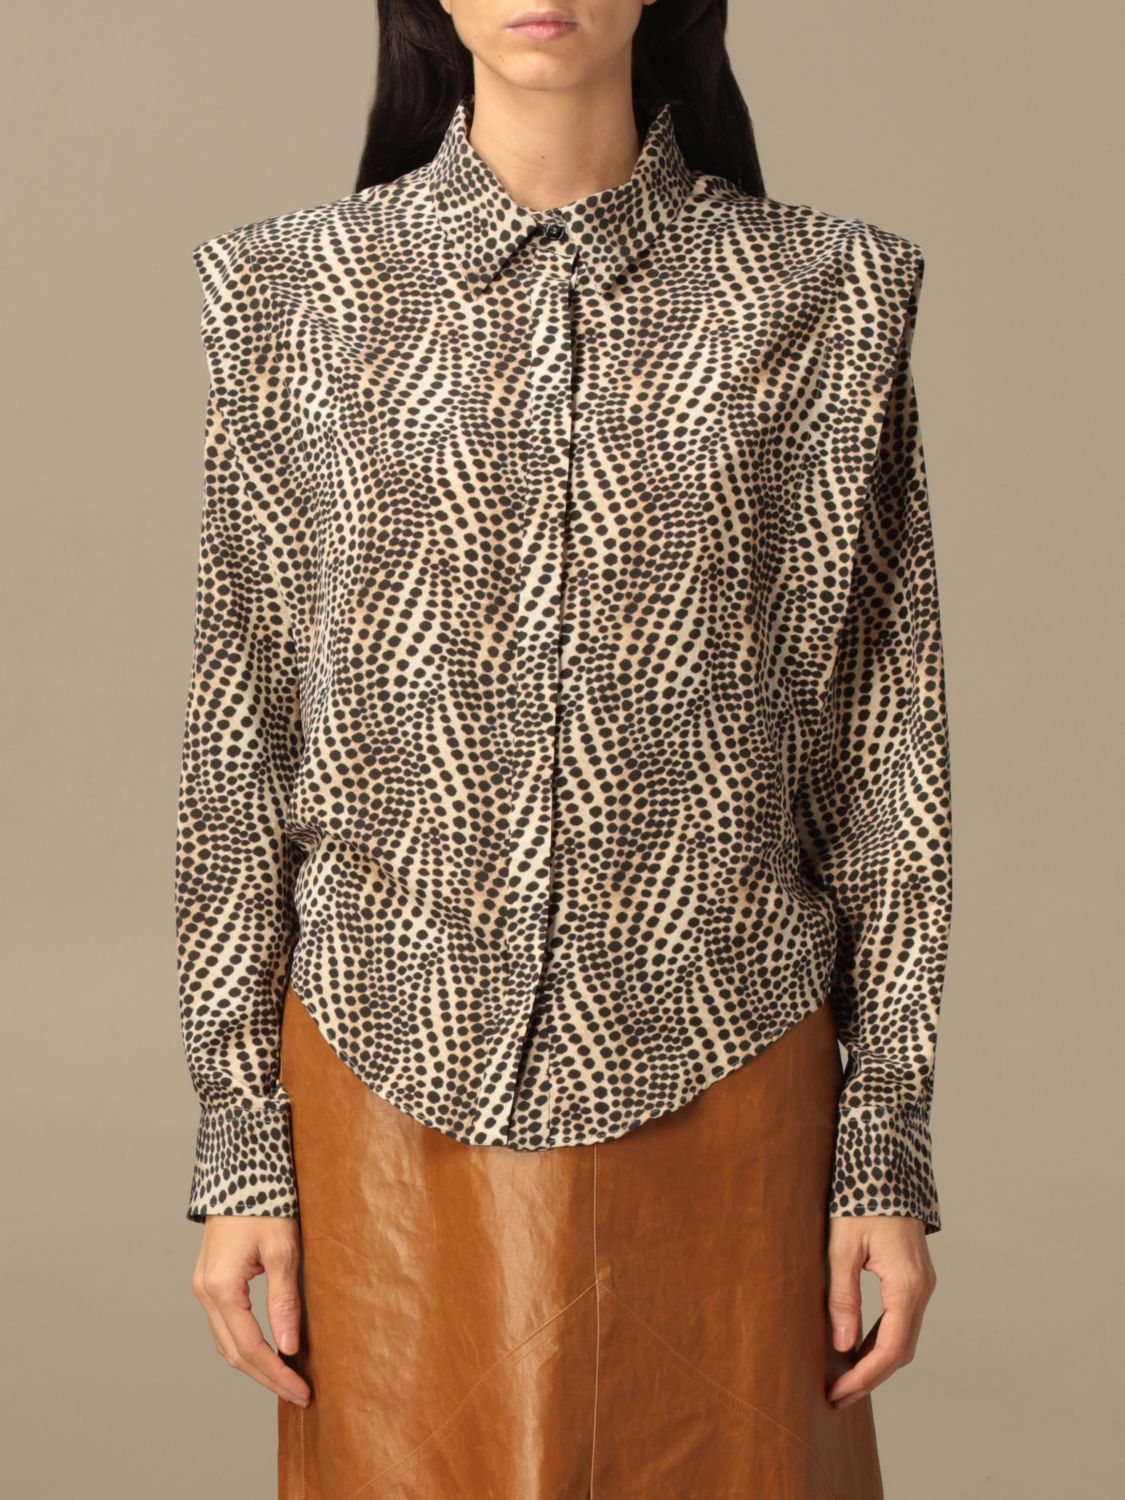 Shirt Isabel Marant: Isabel Marant patterned shirt beige 1